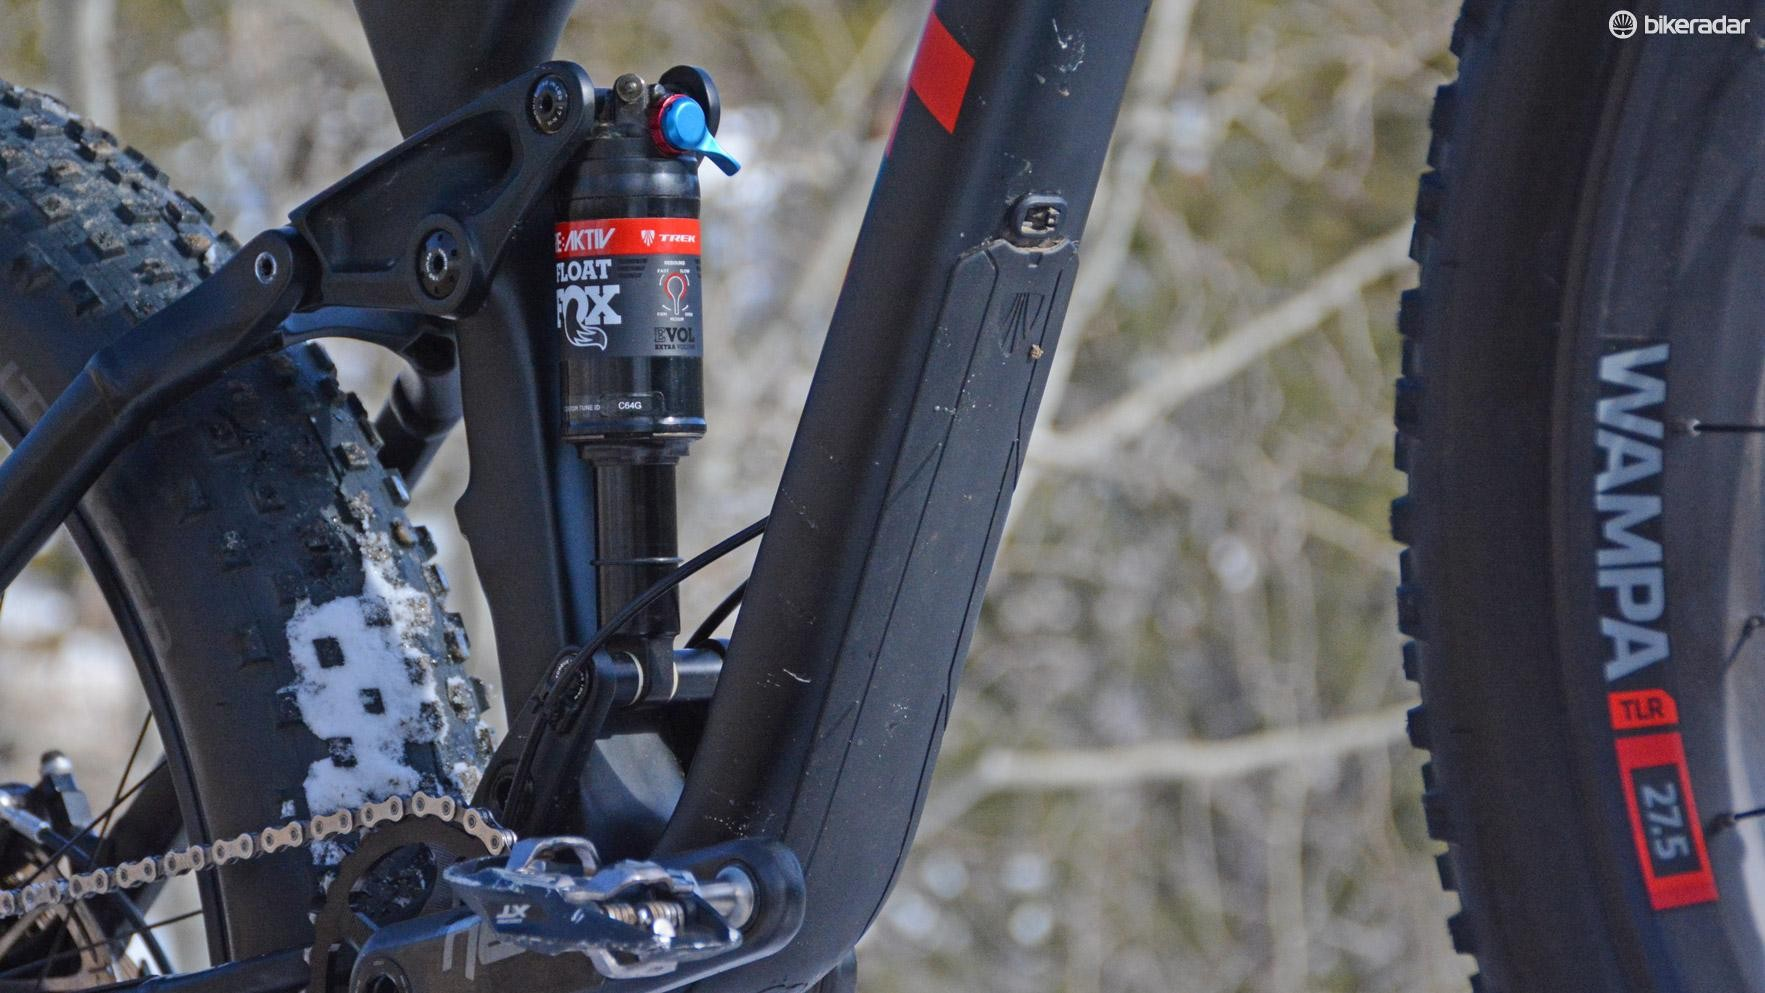 Proof that this rig is destined for summertime's rocks, Trek's Carbon Armor protects the down tube from trail shrapnel